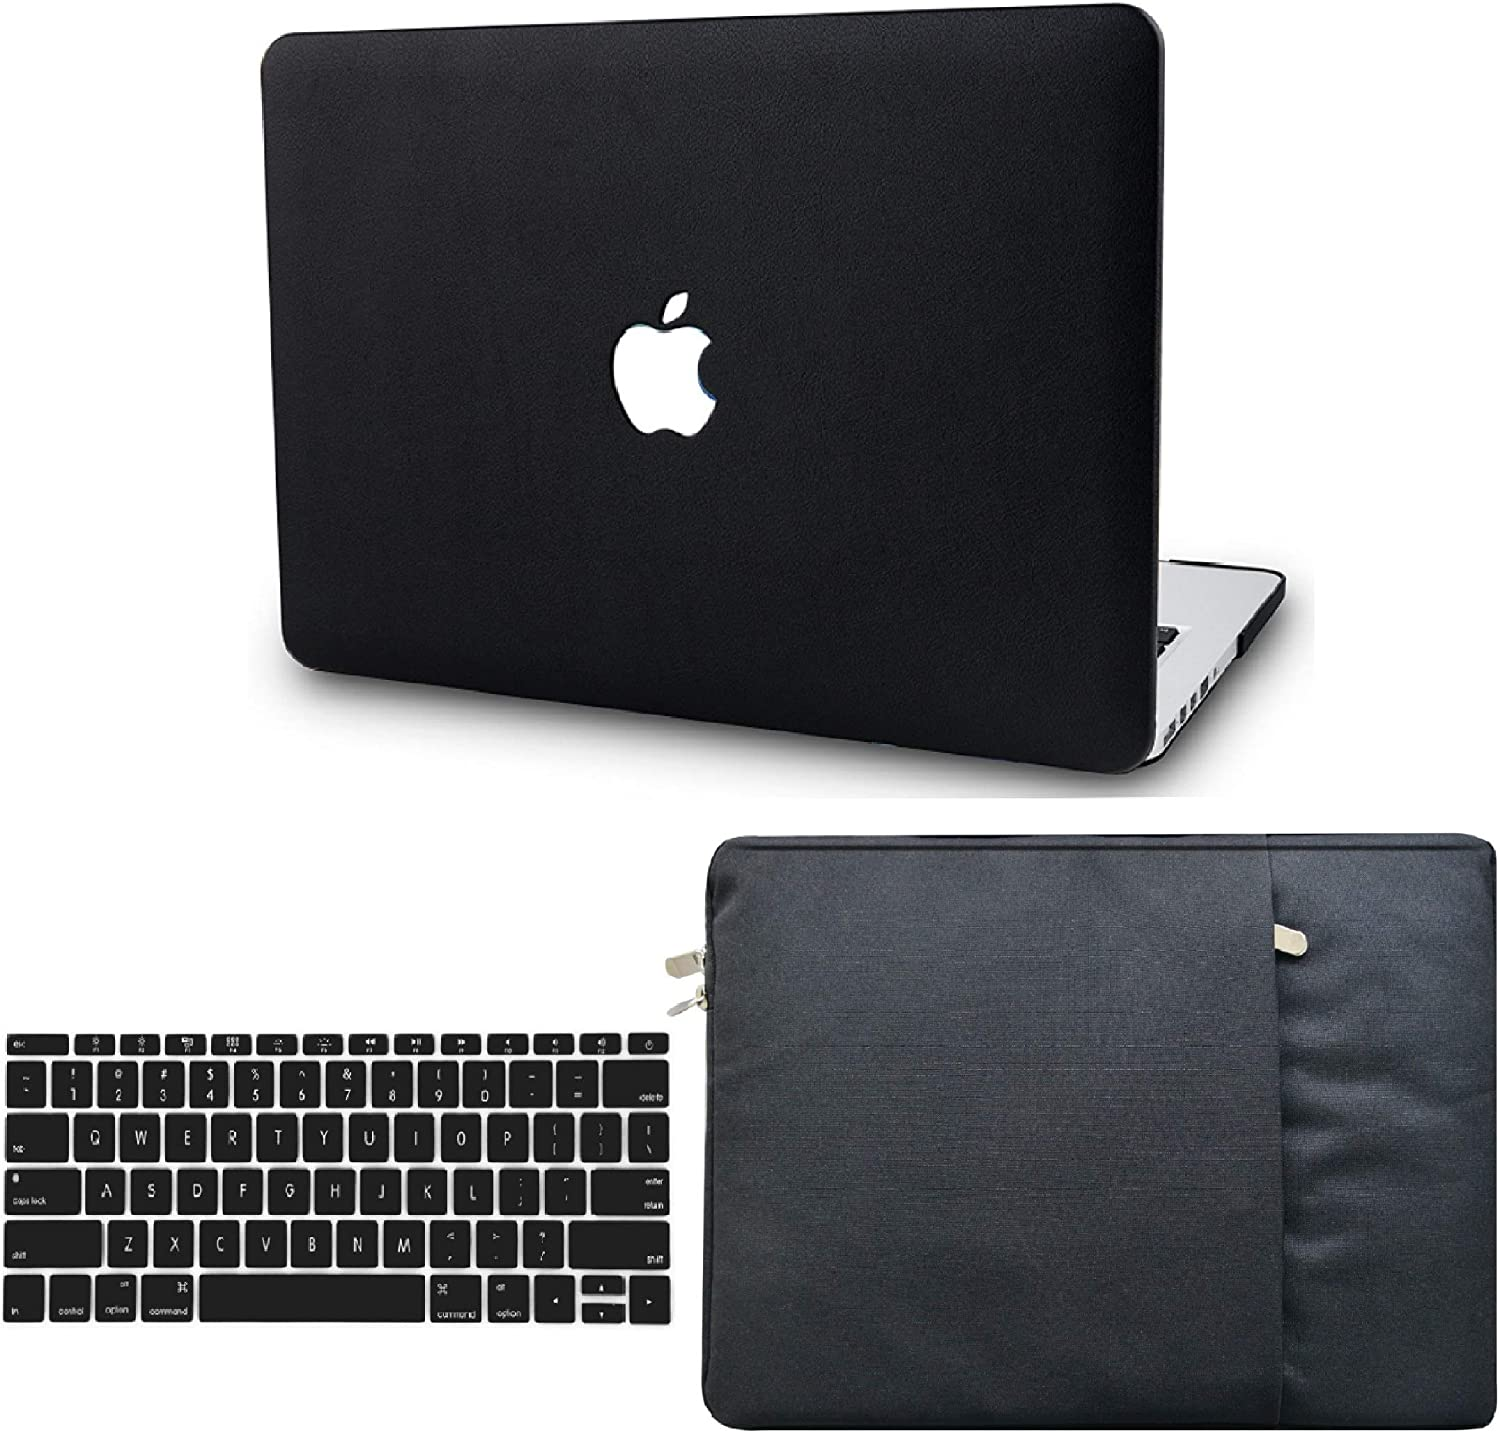 """KECC Laptop Case for Old MacBook Pro 15"""" Retina (-2015) w/Keyboard Cover + Sleeve Italian Leather Case A1398 3 in 1 Bundle (Black Leather)"""